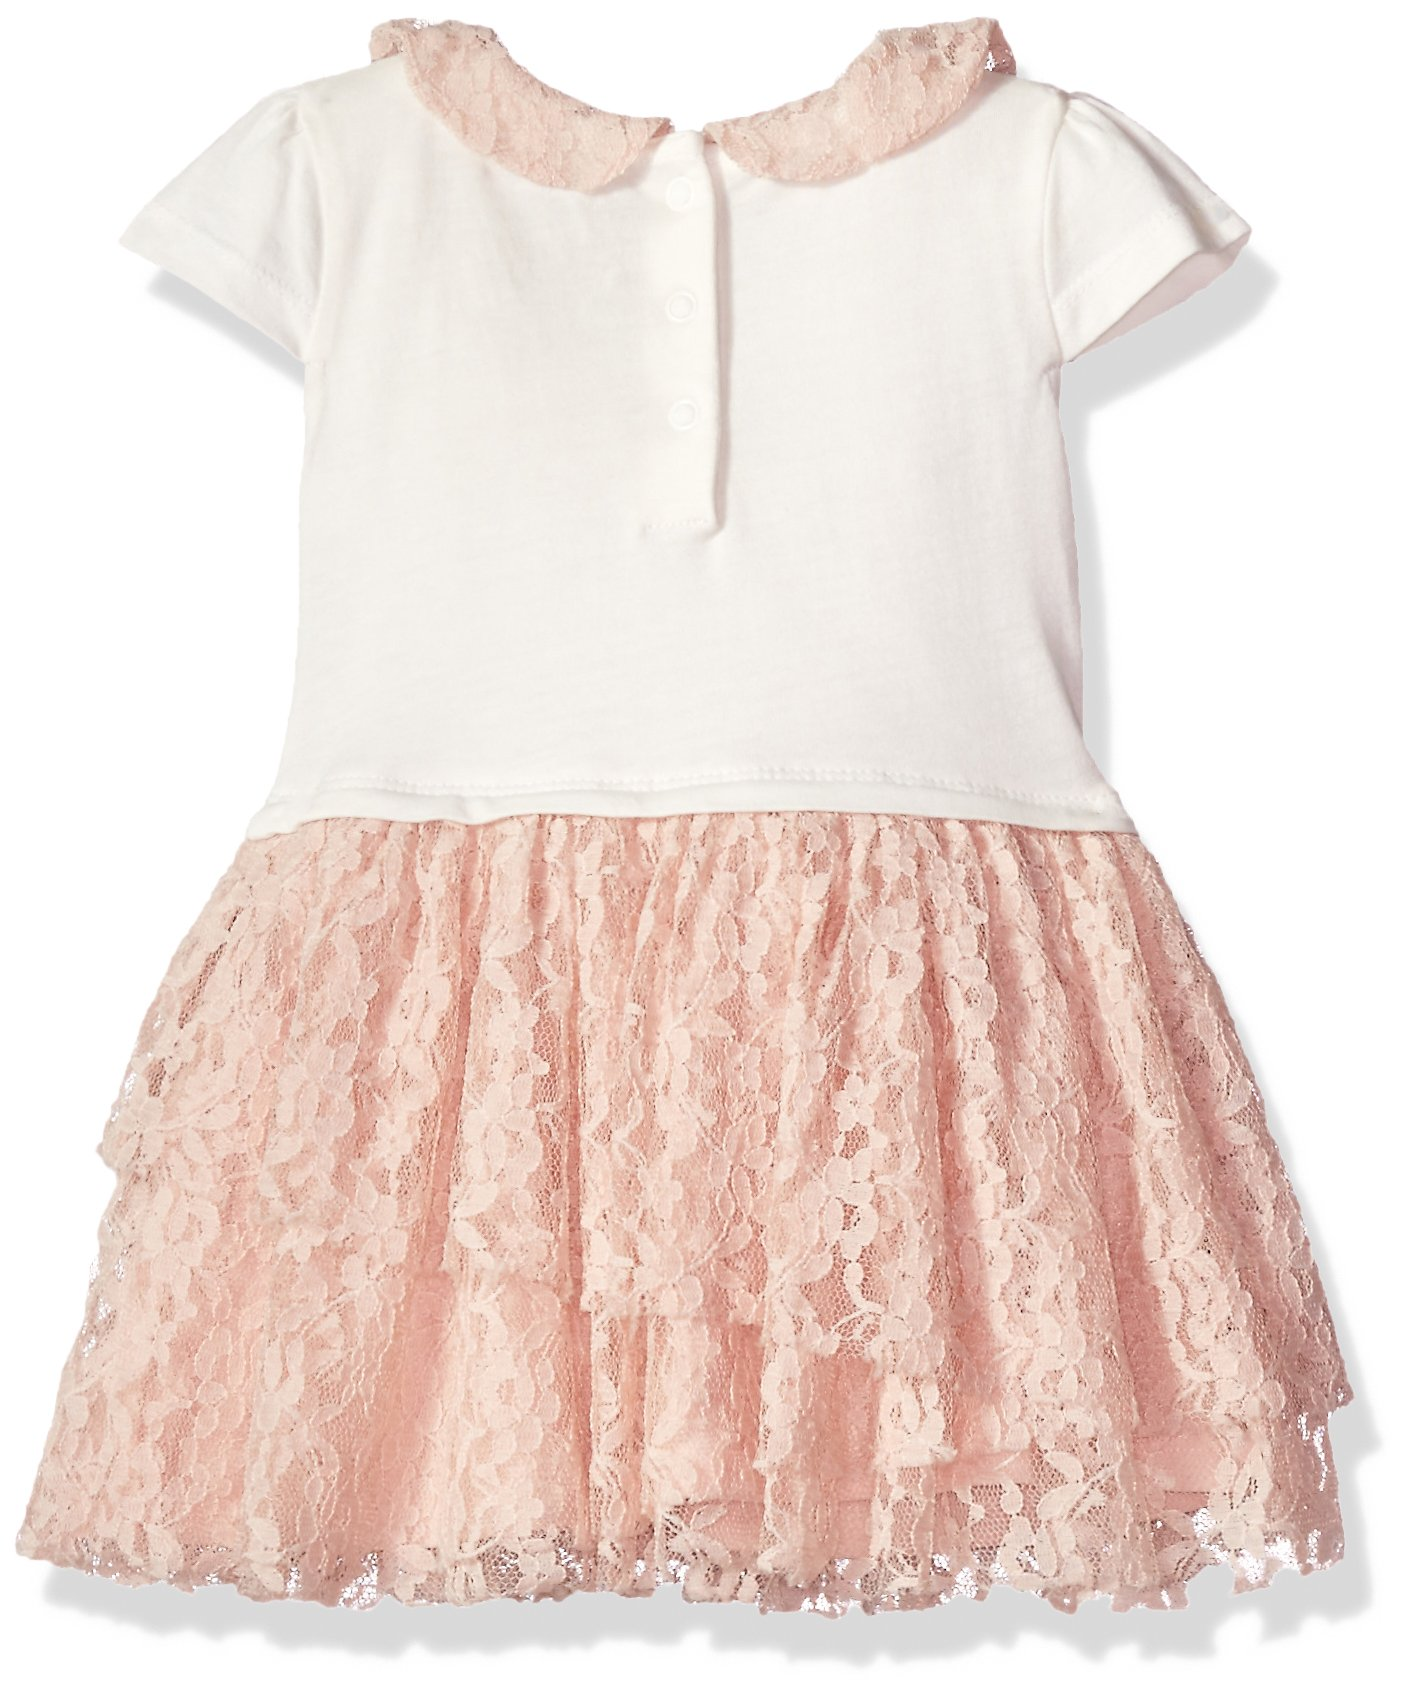 GUESS Baby Girls Floral Ruffle Dress Playwear Baby Products TIBS